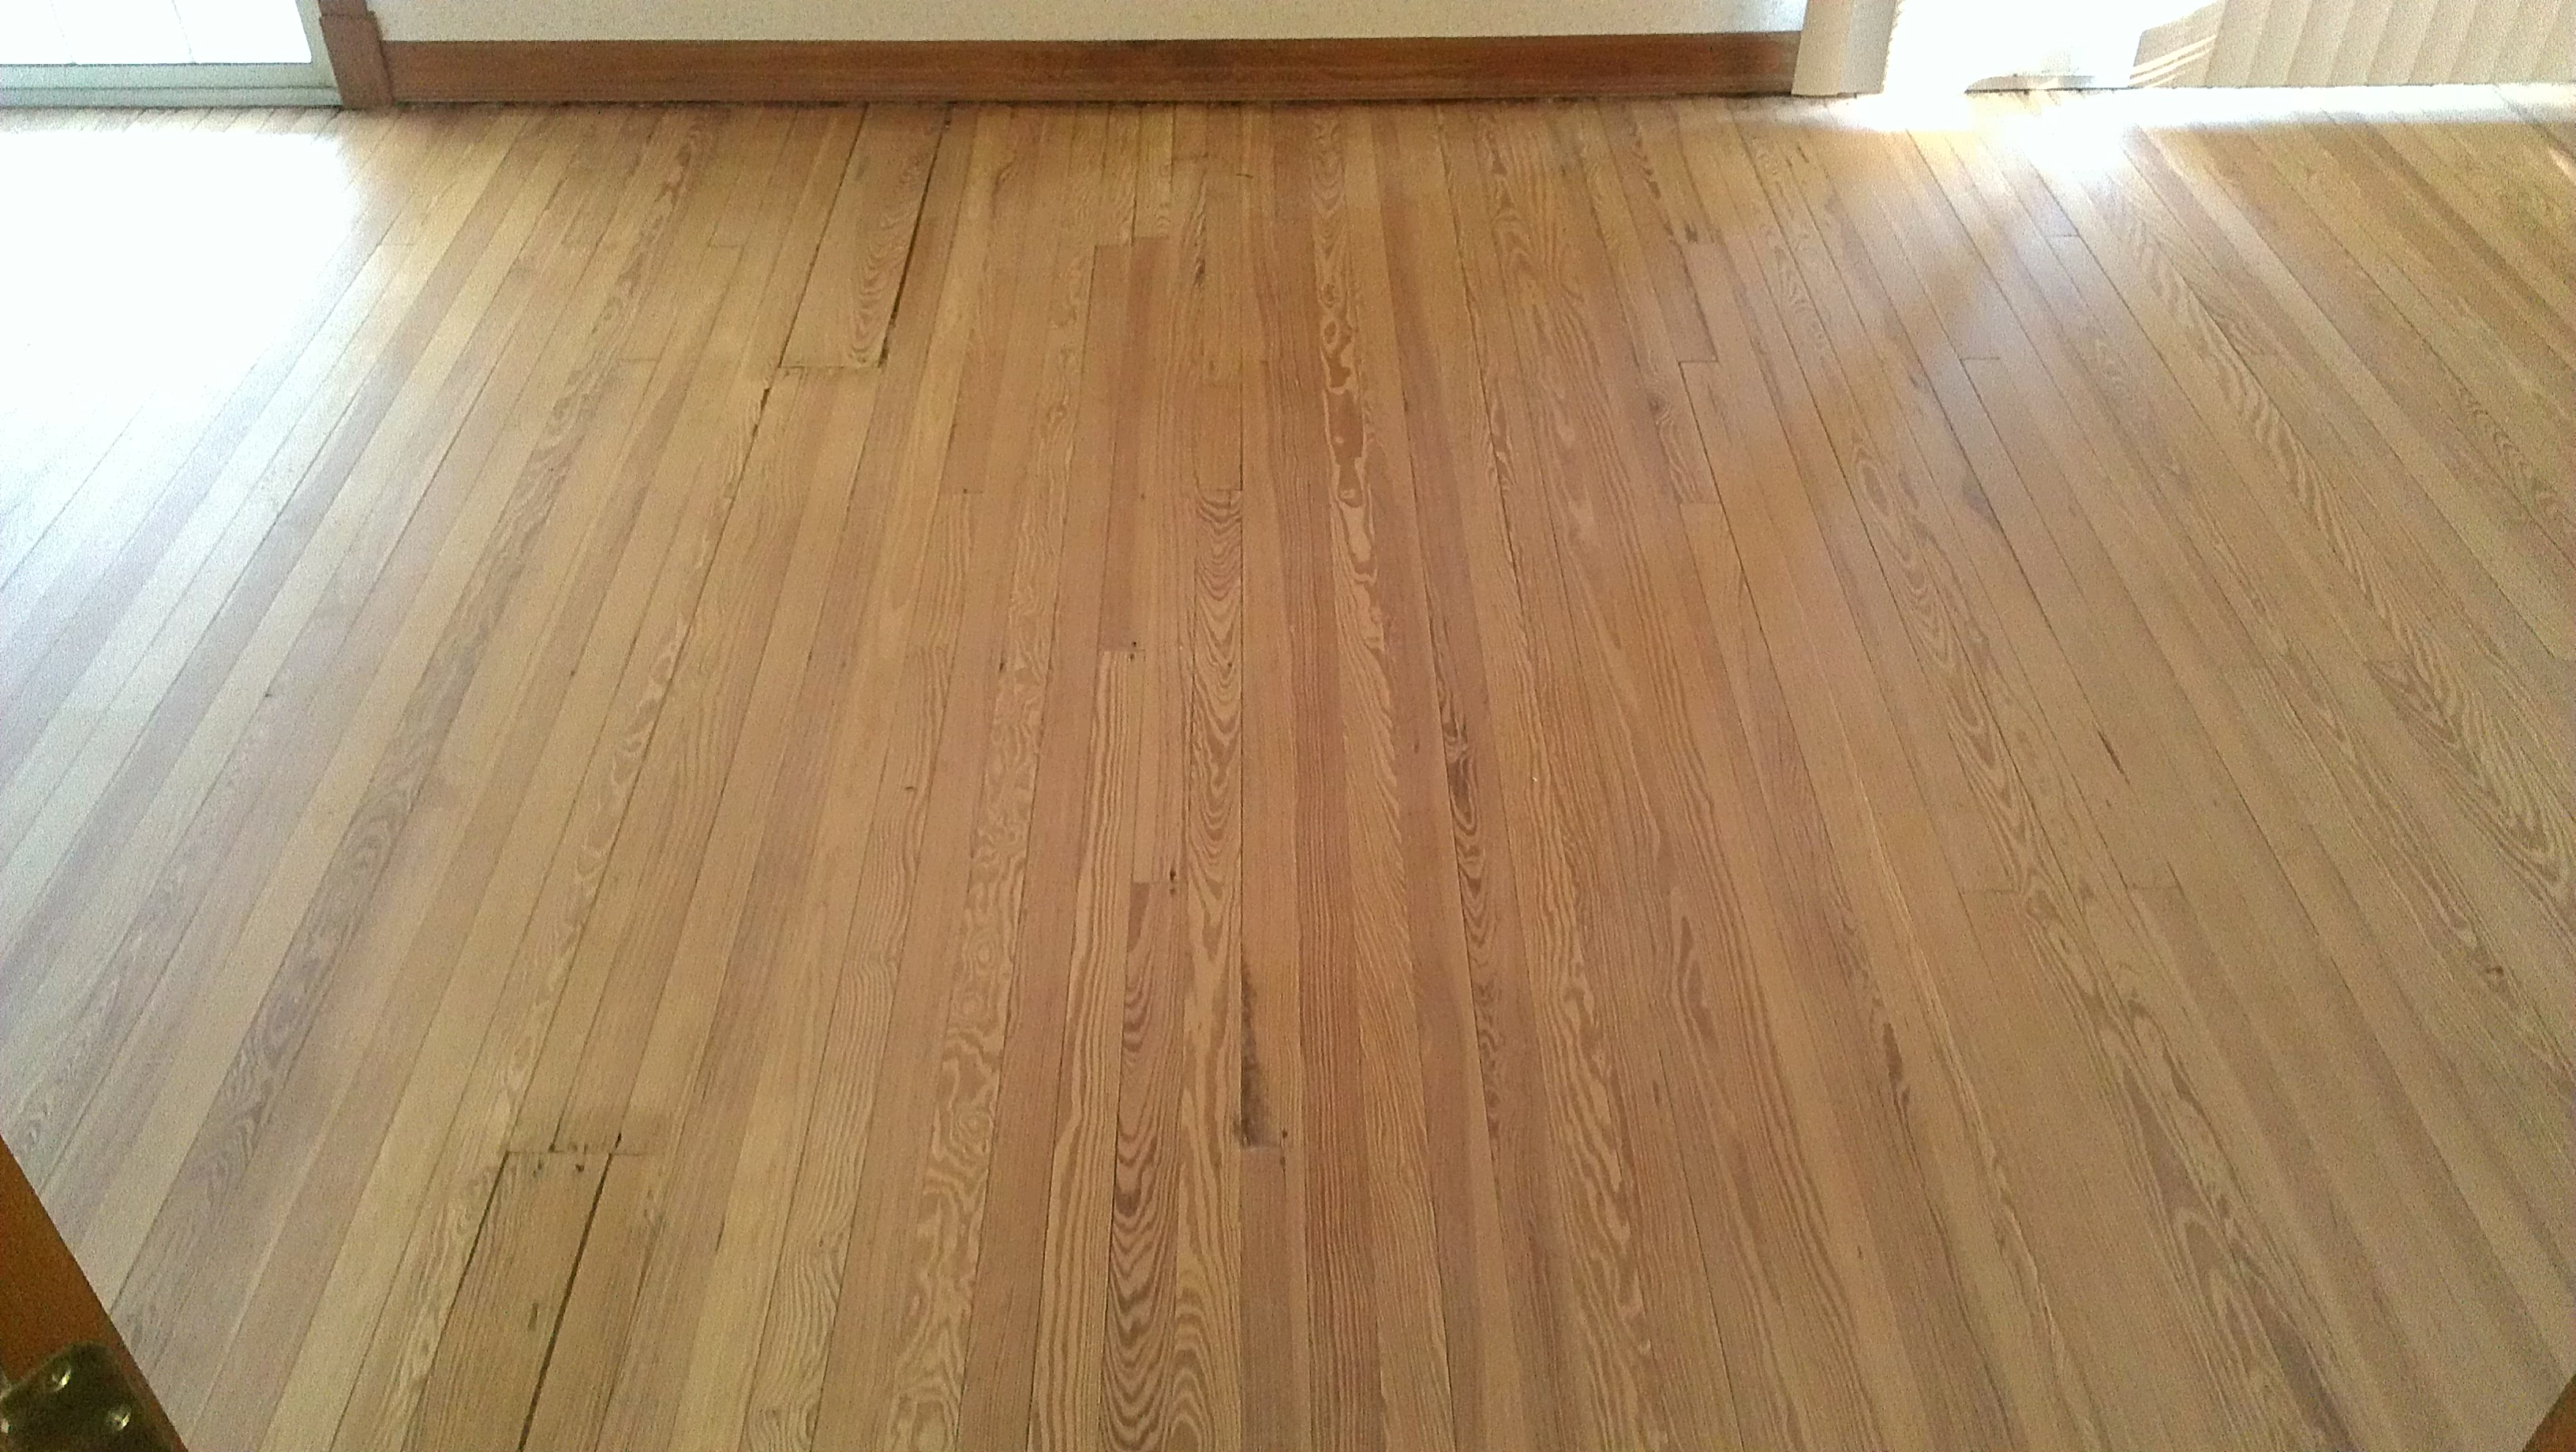 Wood floor wood flooring contractor for Residential wood flooring